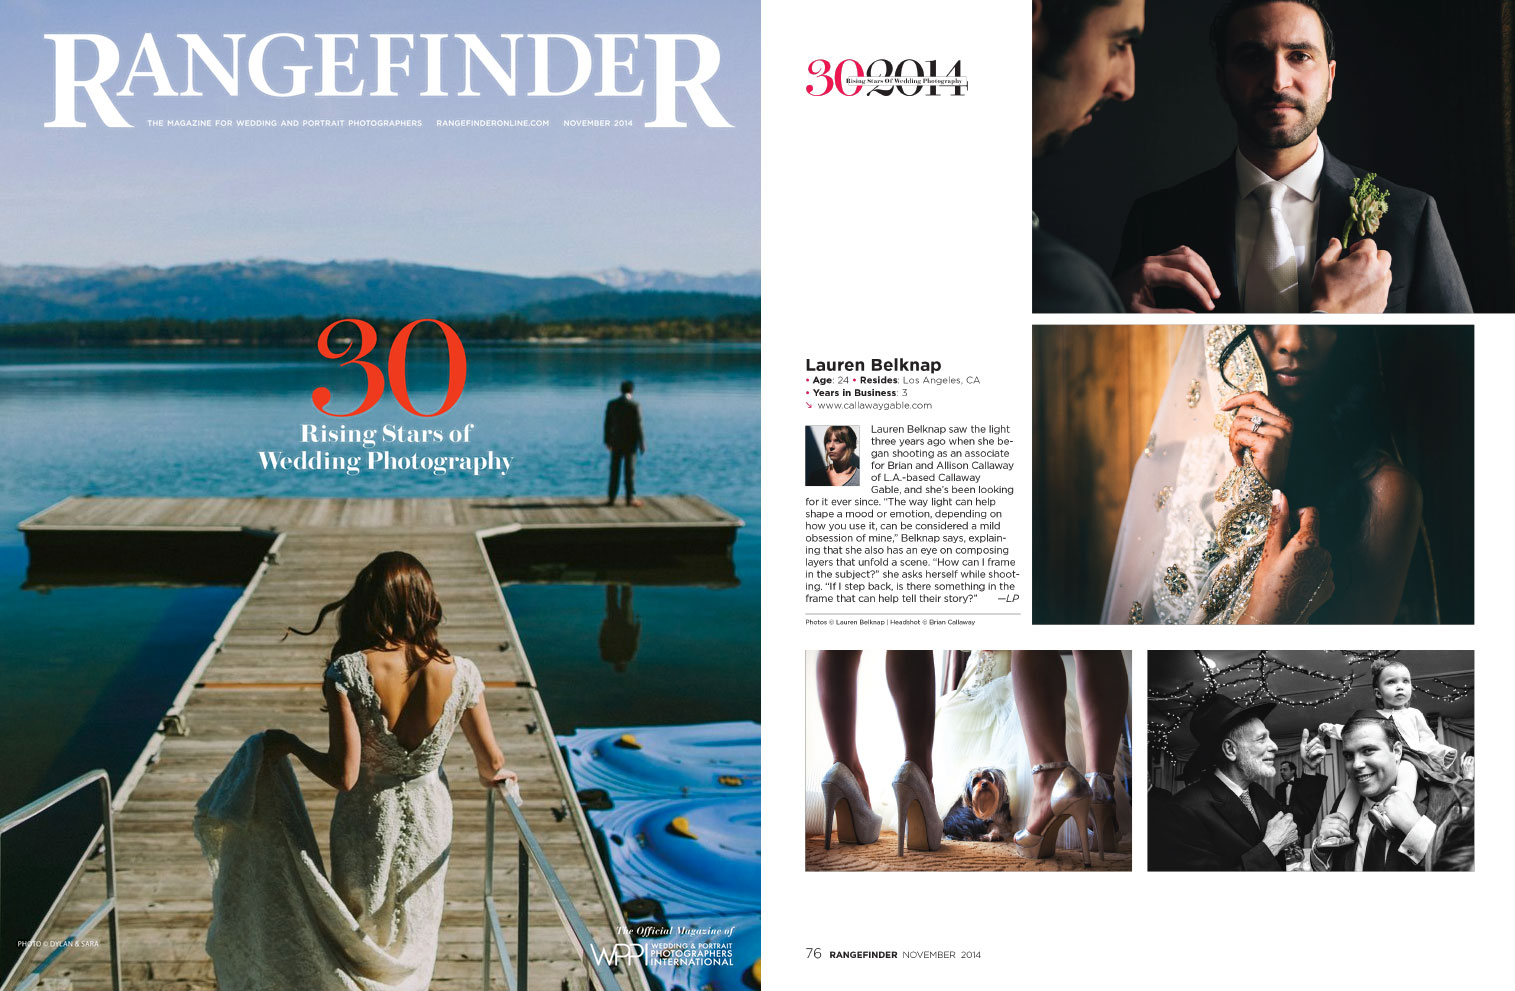 In the latest issue of Rangefinder Magazine, our own Lead Associate Lauren Belknap is named one of 30 Rising Stars of Wedding Photography - 2014. A Rising Star is a wedding photographer who is selected by the artistic and creative quality and uniqueness of their portfolio and the fact that they are new to the industry, less than 5 years to be exact.This is HUGE news and an amazing accomplishment! Especially when you consider that Lauren first came to work with us only 3 summers ago and just 2 months after graduating from Brooks College in Santa Barbara. Since that time we have continually worked with Lauren on her craft  while photographing weddings with us in places like Bora Bora, Hawaii, Mexico and all over the US. She even had a small image of Bachelorette DeAnna Pappas on the cover of US Weekly!She is a rare talent who now primarily shoots as a Lead photographer for Callaway Gable, and trains our newest shooters. You can see her portfolio on our Callaway Gable Associates page. Lauren exemplifies the idea that hard work does pay off, and no one deserves this more than she. Way to go Lauren!!! We love you and cannot wait to see what's next!To see the full list of 30 amazing photographers, go the Rangefinder blog, or check out the Rangefinder article.